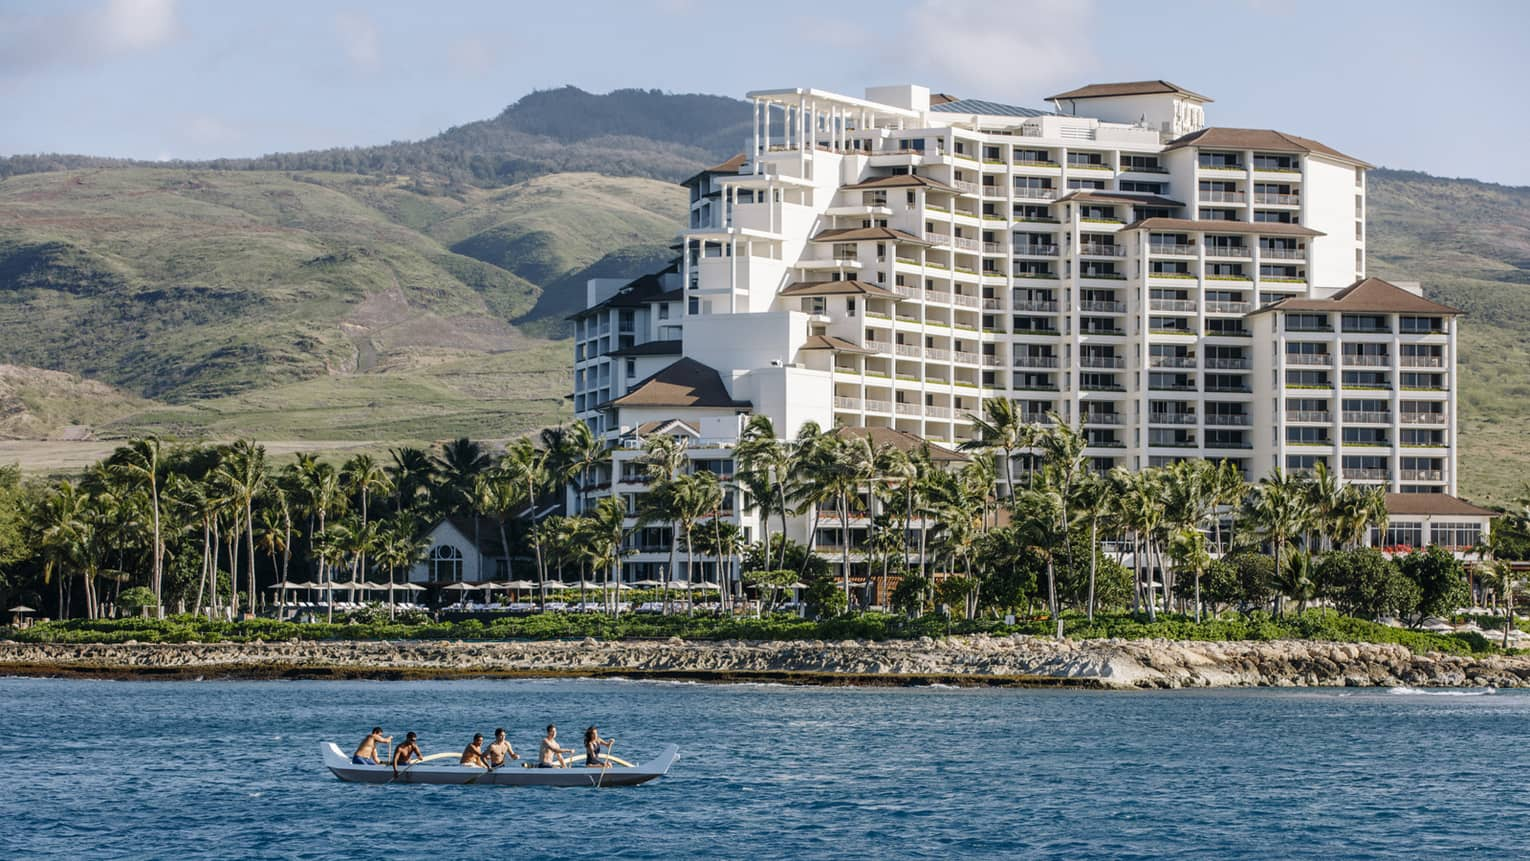 An outrigger canoe paddles past the Hotel